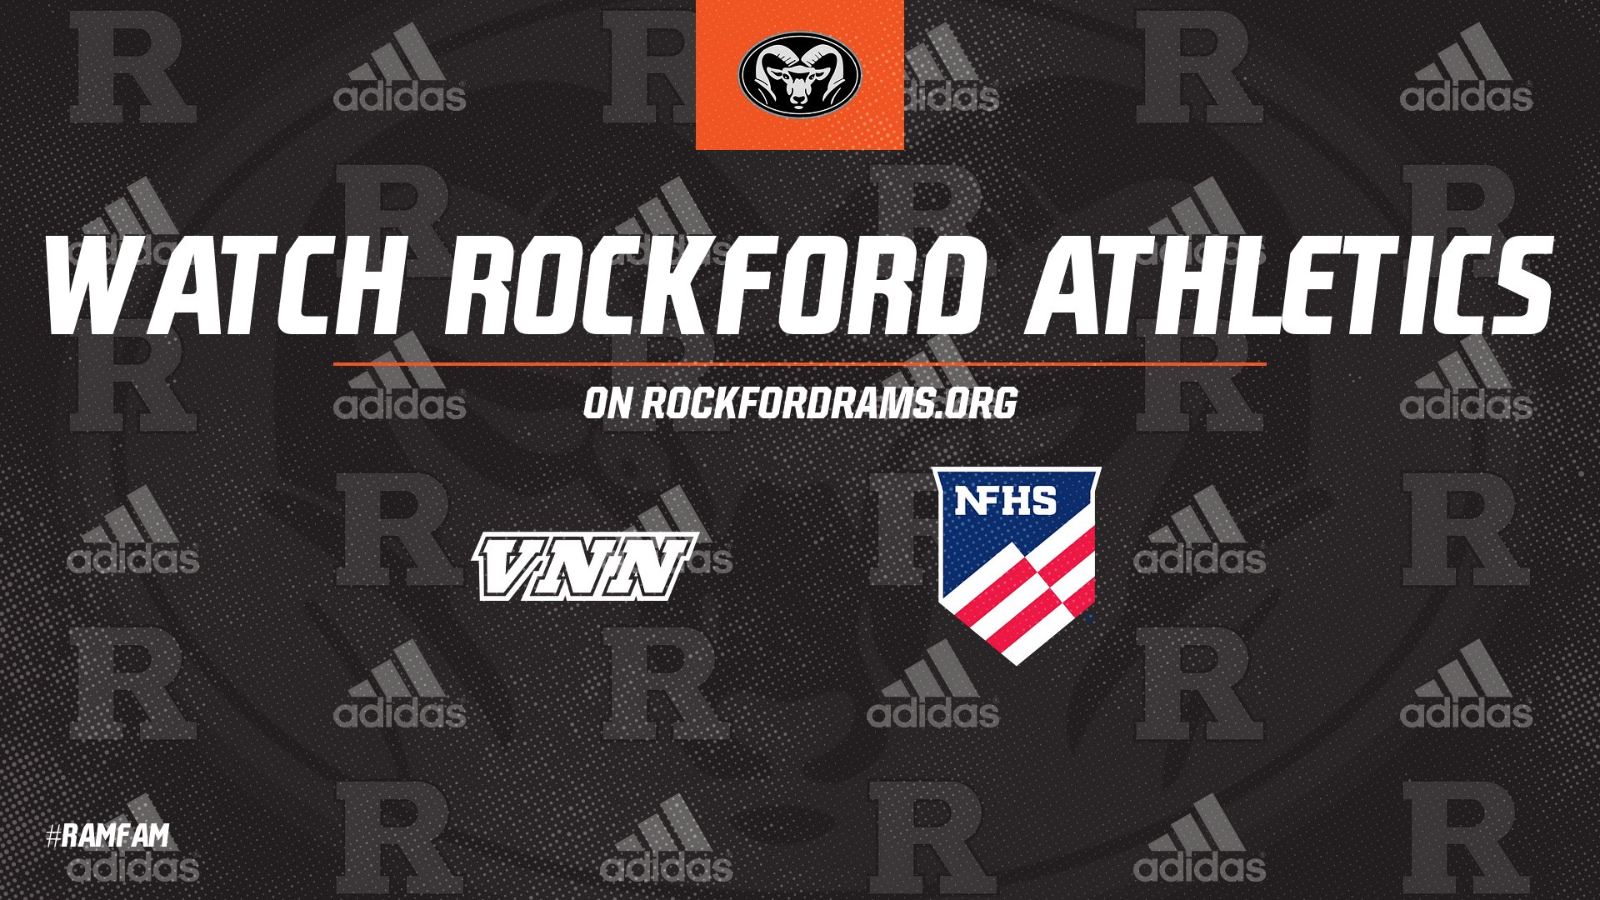 Watch Rockford contests for FREE